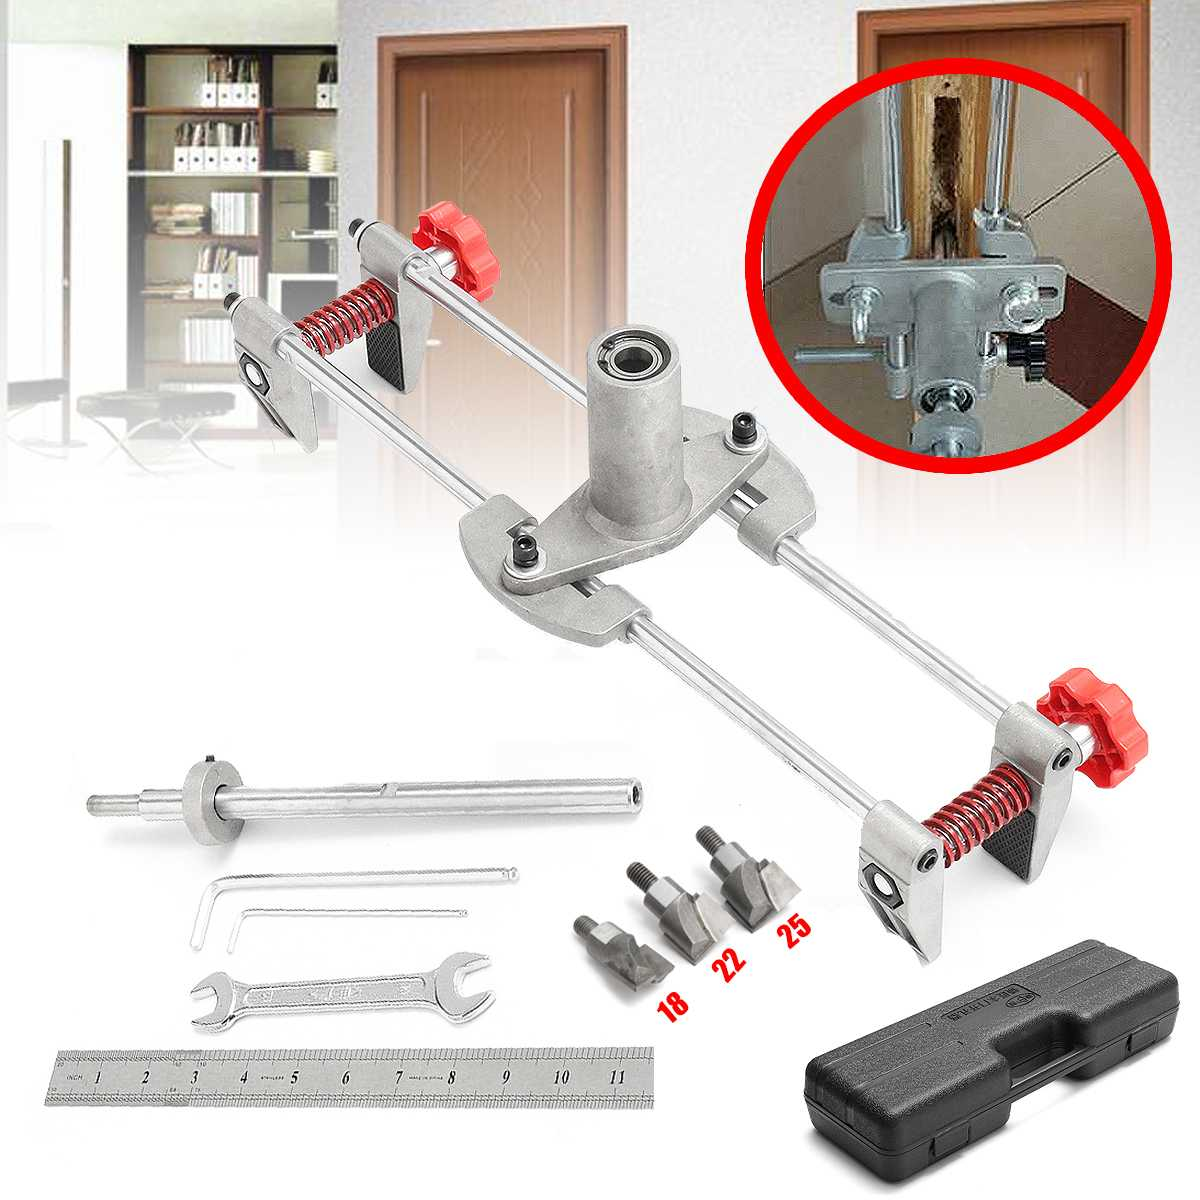 Fitting Jig Door Case Door Kit Pcs Maintenance Mortice Mortiser 3 DBB JIG1 Lock Lock 8 Key Cutters Tool Security With Mortice